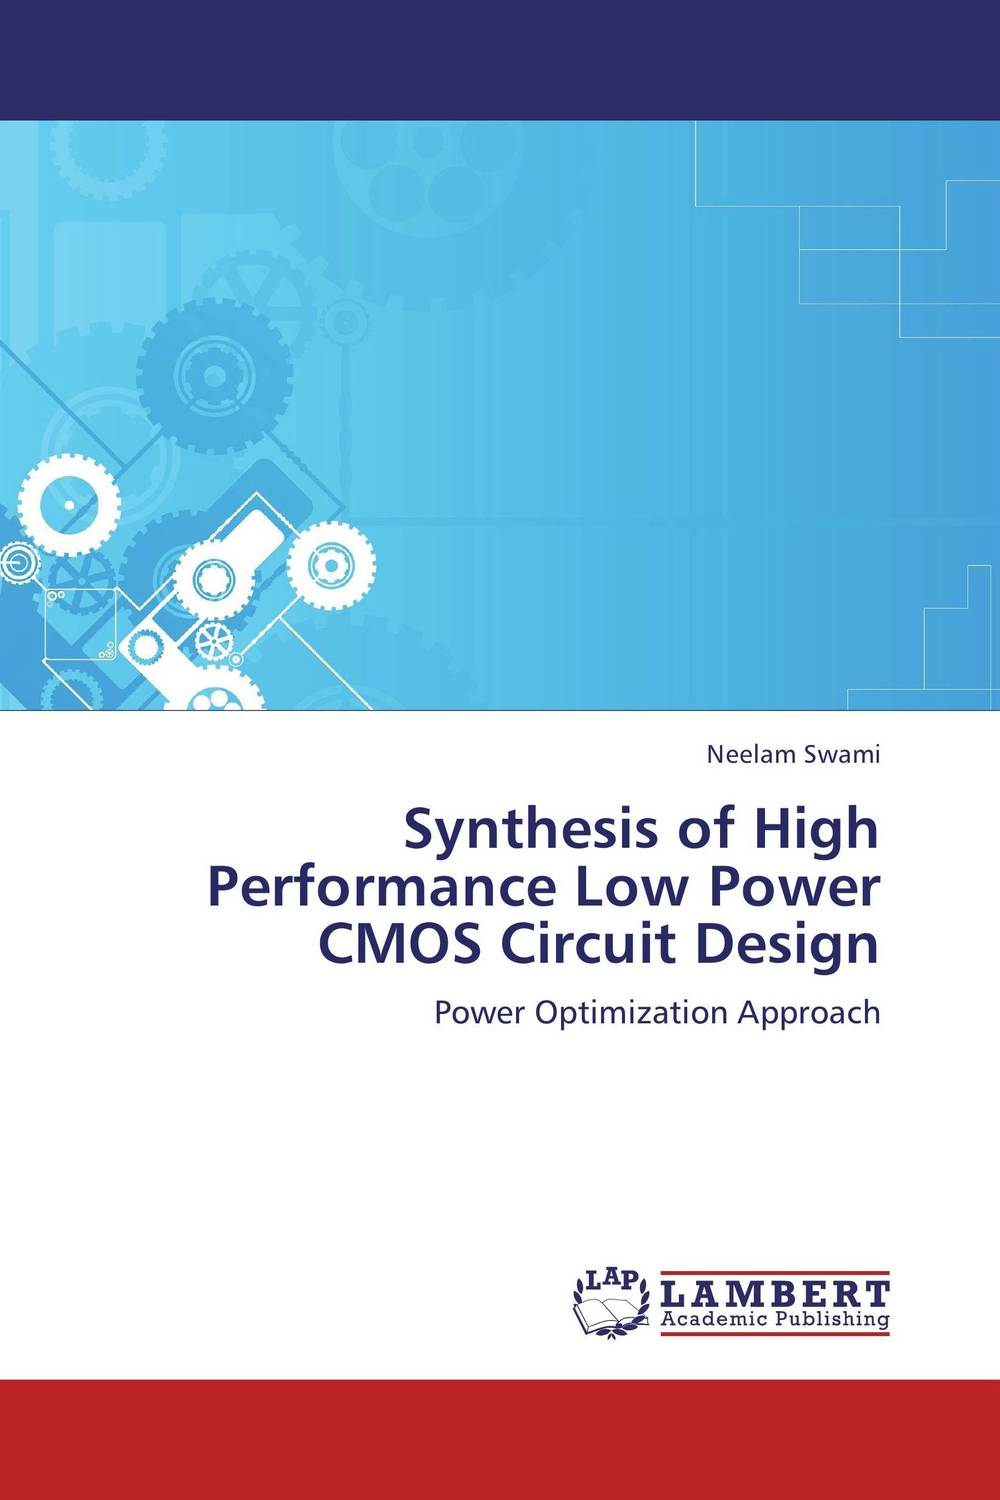 Synthesis of High Performance Low Power CMOS Circuit Design